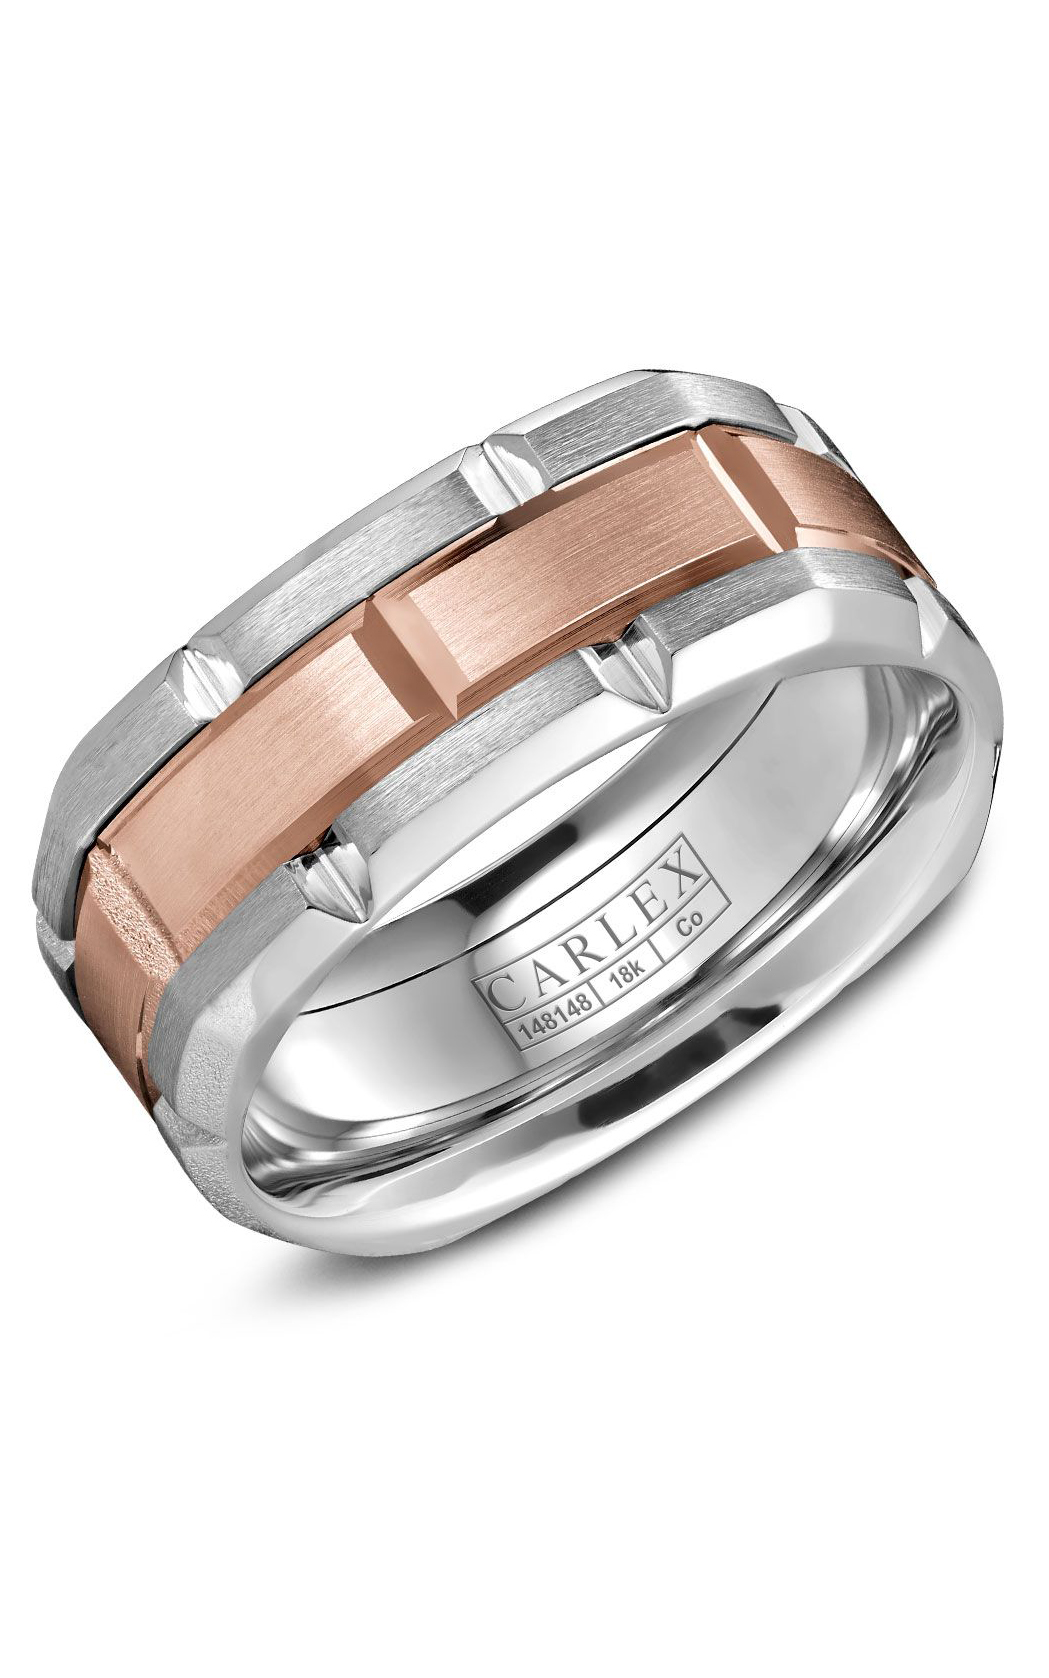 Carlex Sport Men's Wedding Band CX1-0001RW product image